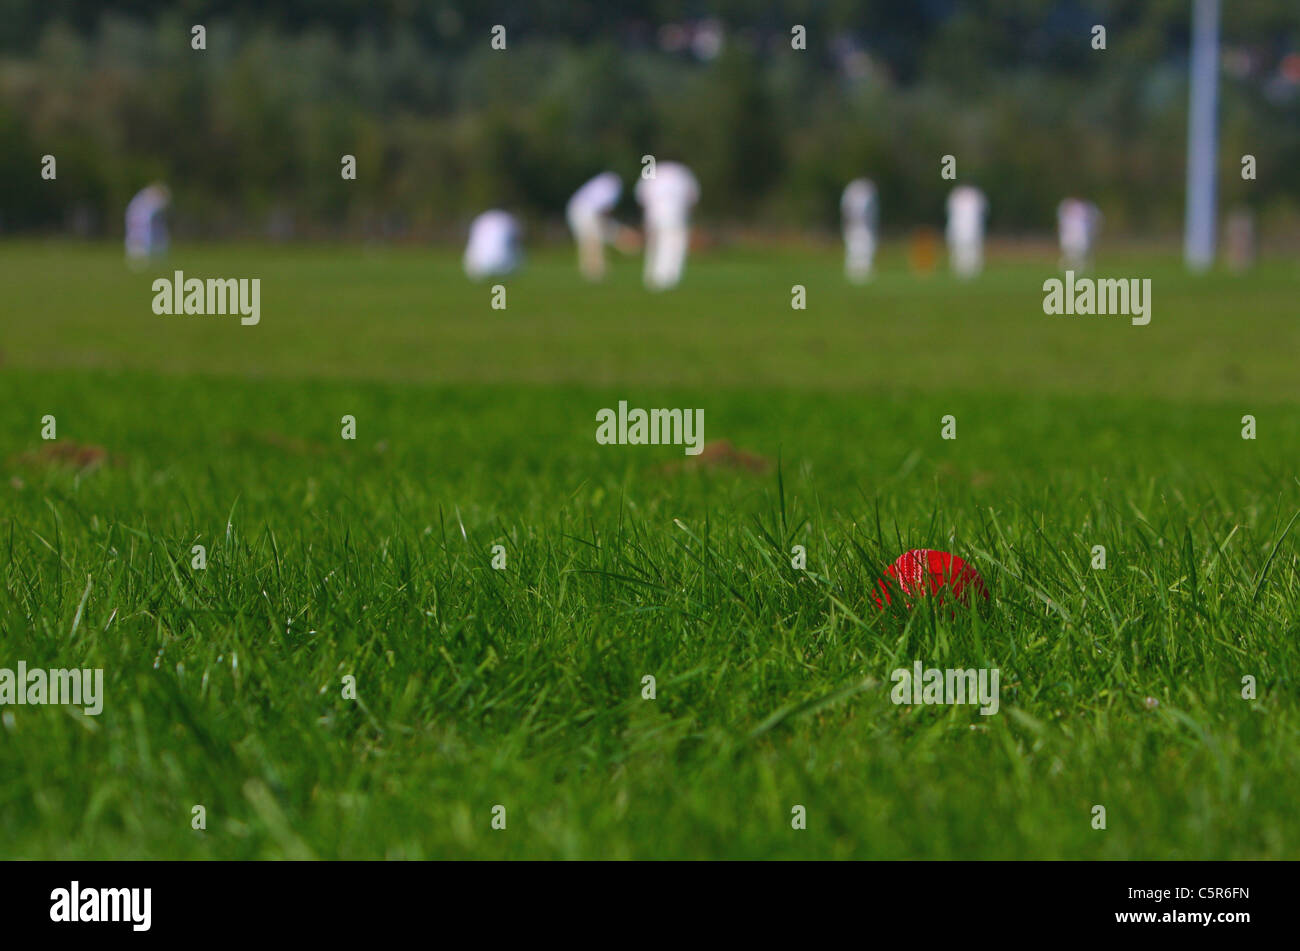 Amateur Cricket Game, Played in Walferdange (Luxembourg) on 03/09/10 - Stock Image